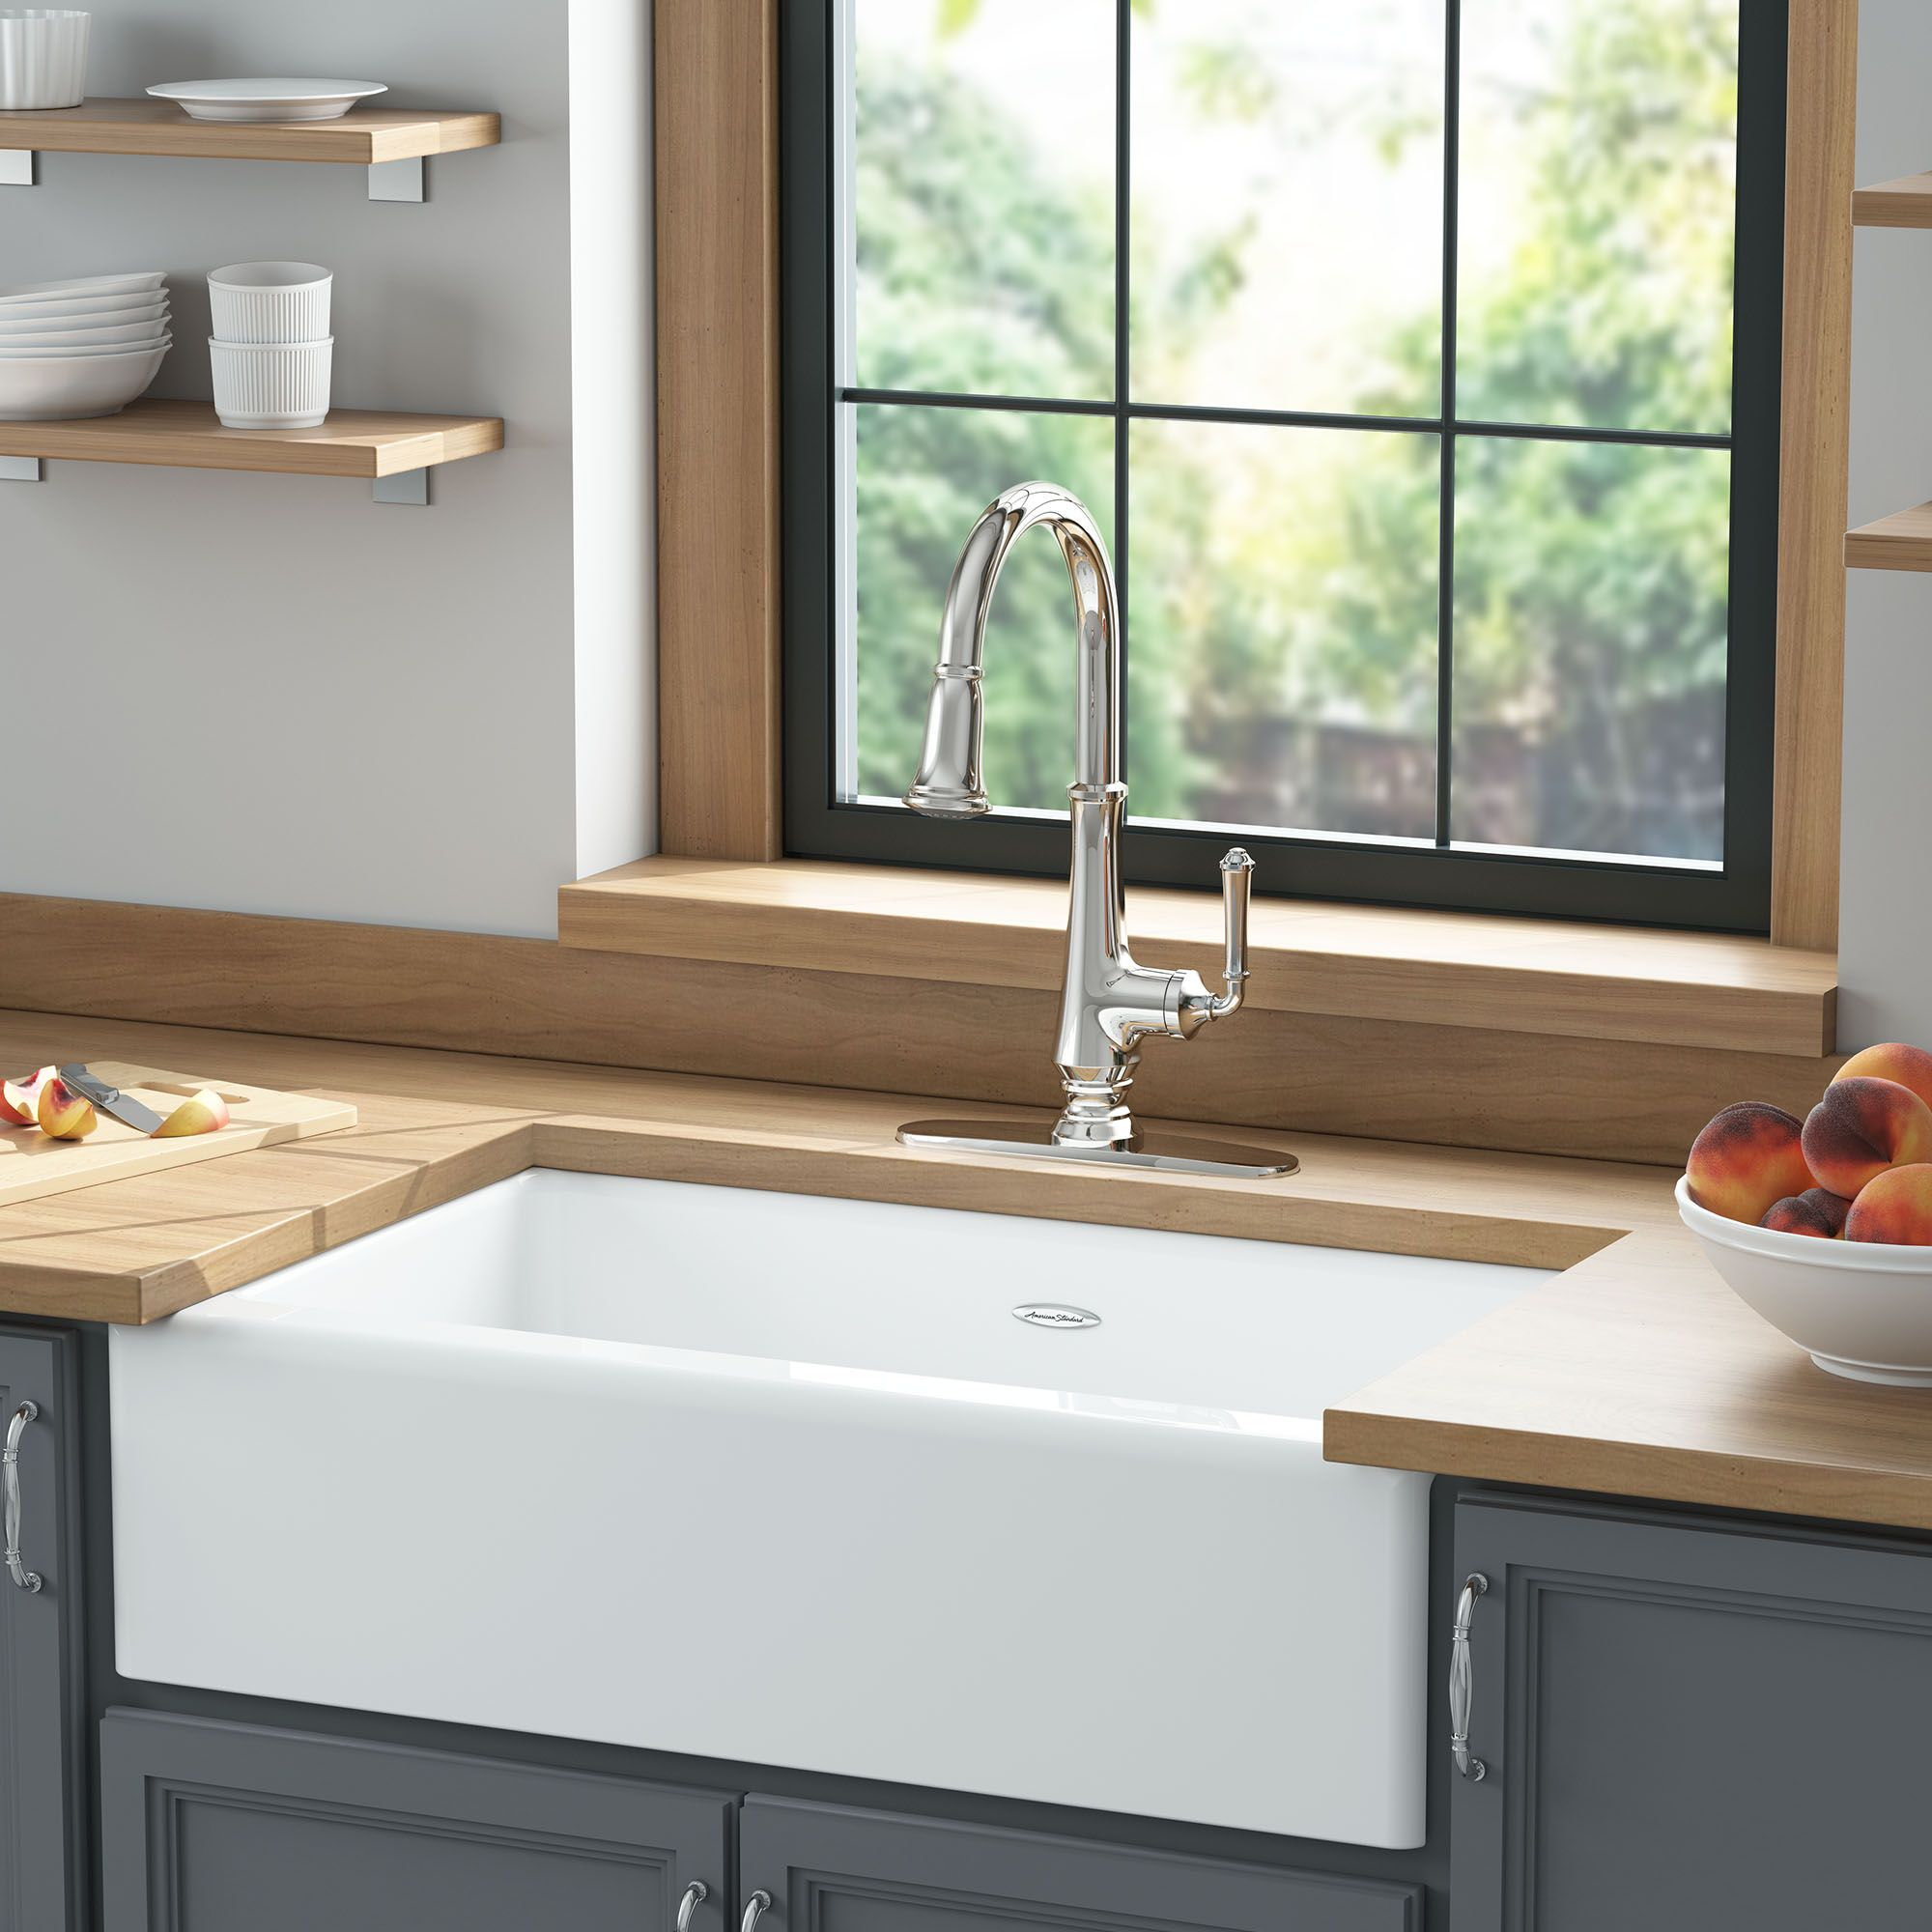 Delancey 33x22 Inch Apron Sink American Standard With Images